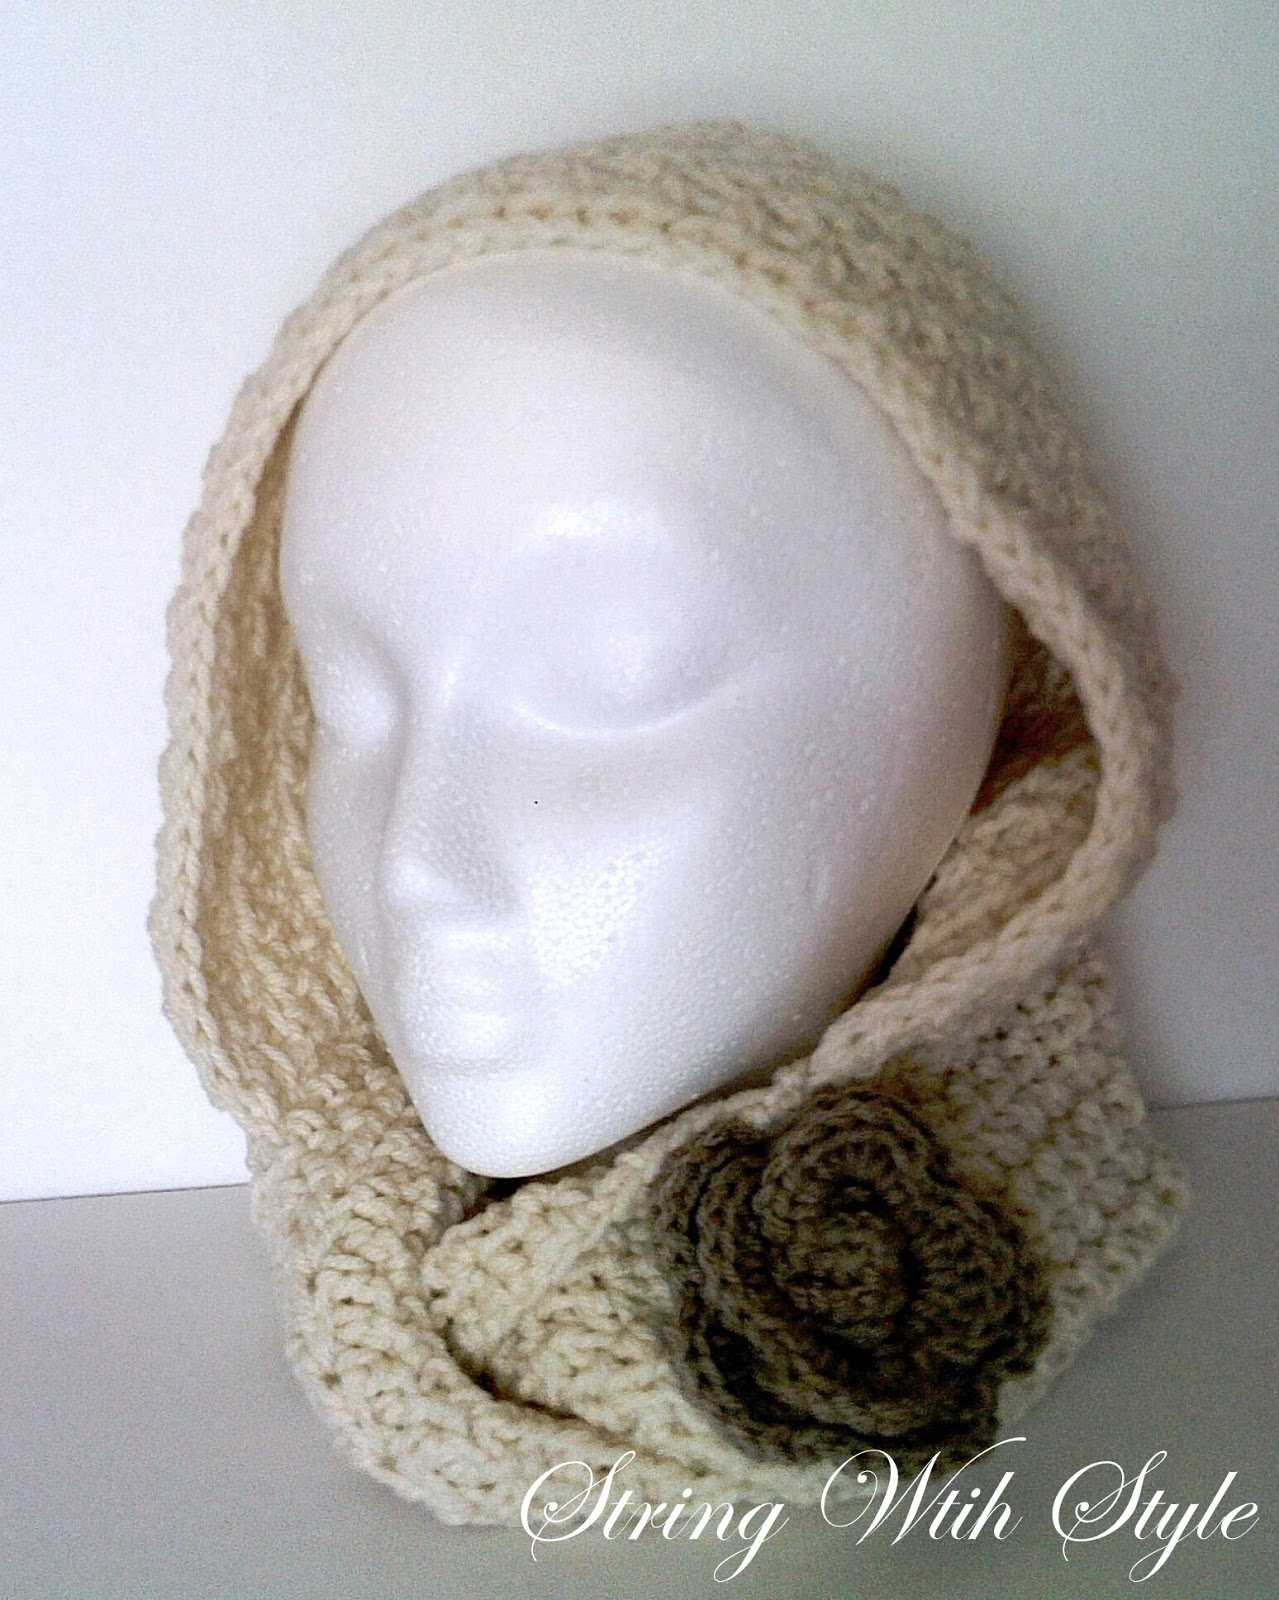 Free Crochet Pattern For Infinity Scarf With Hood : String With Style: Infinity Hooded Scarf